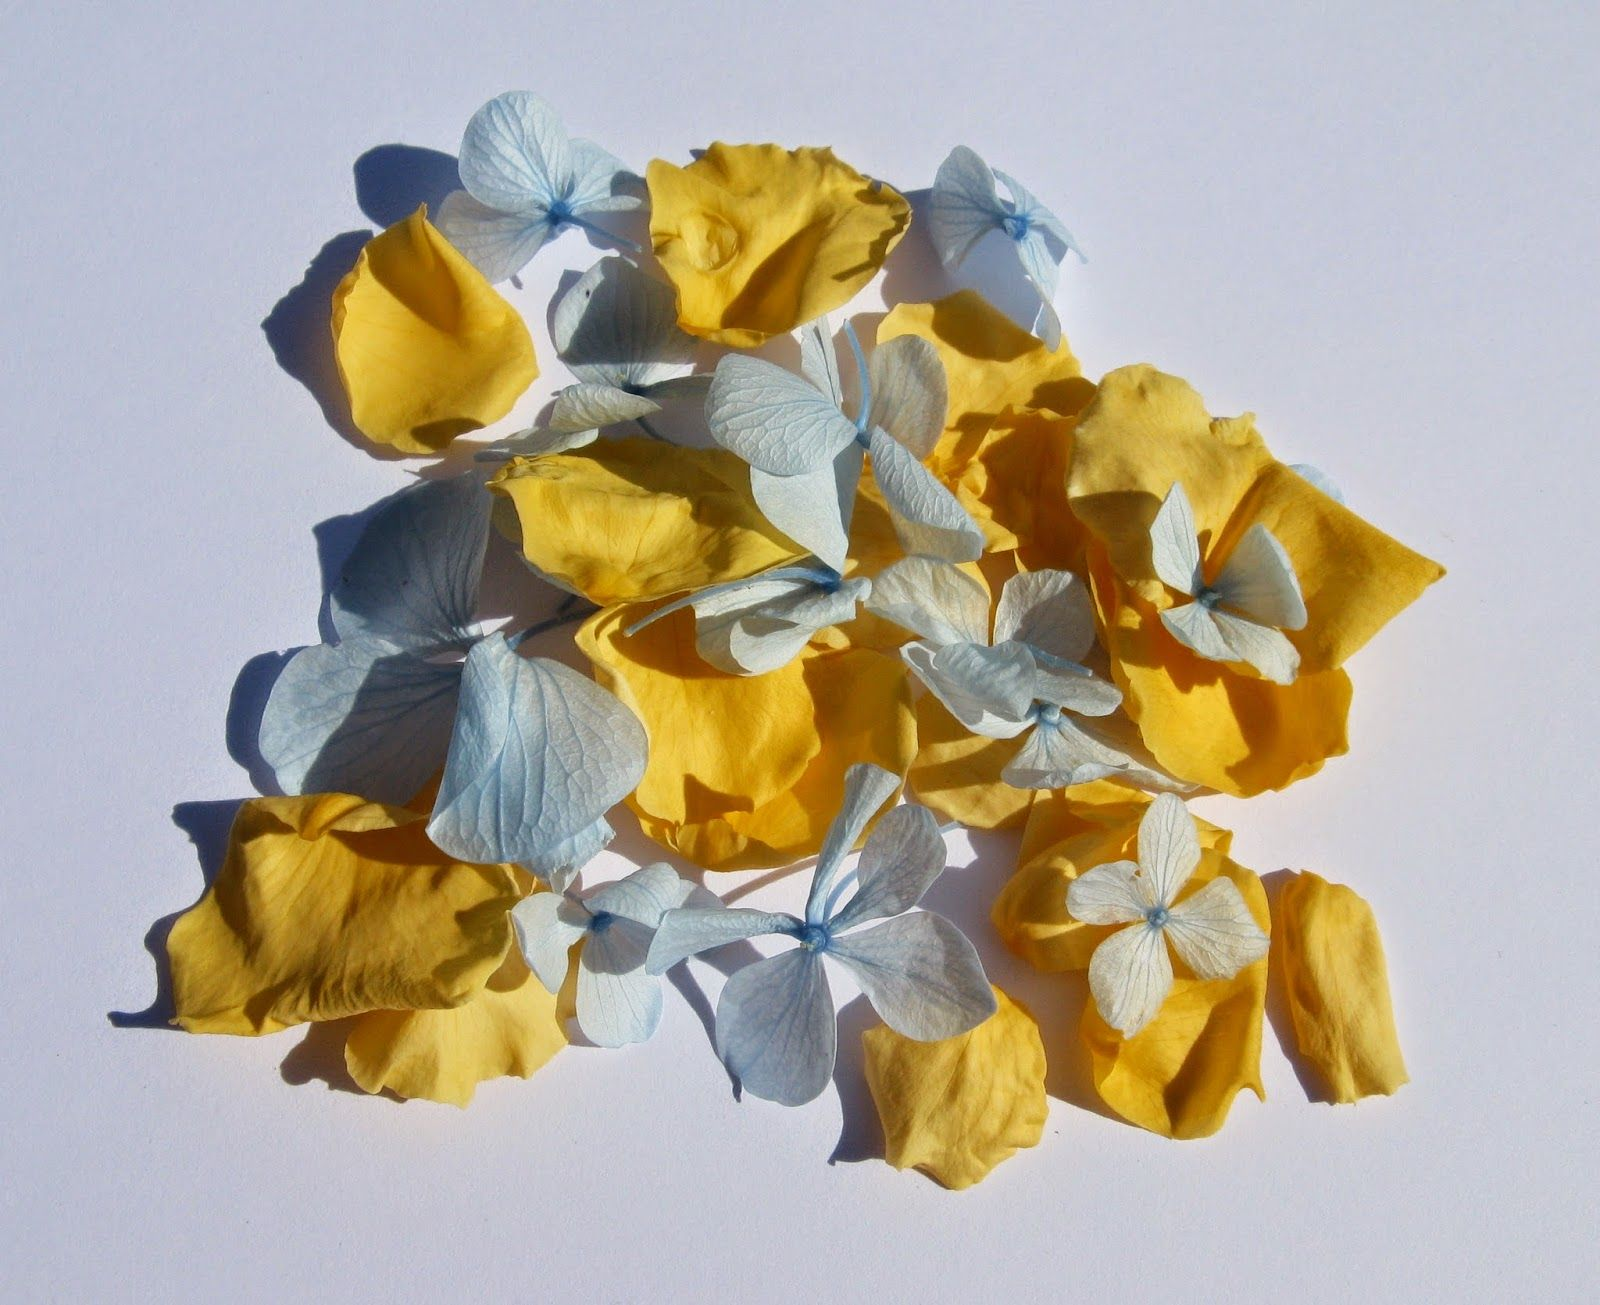 the confetti blog yellow and blue wedding ideas from the real flower petal confetti company yellow rose petals ans blue hydrangea confetti